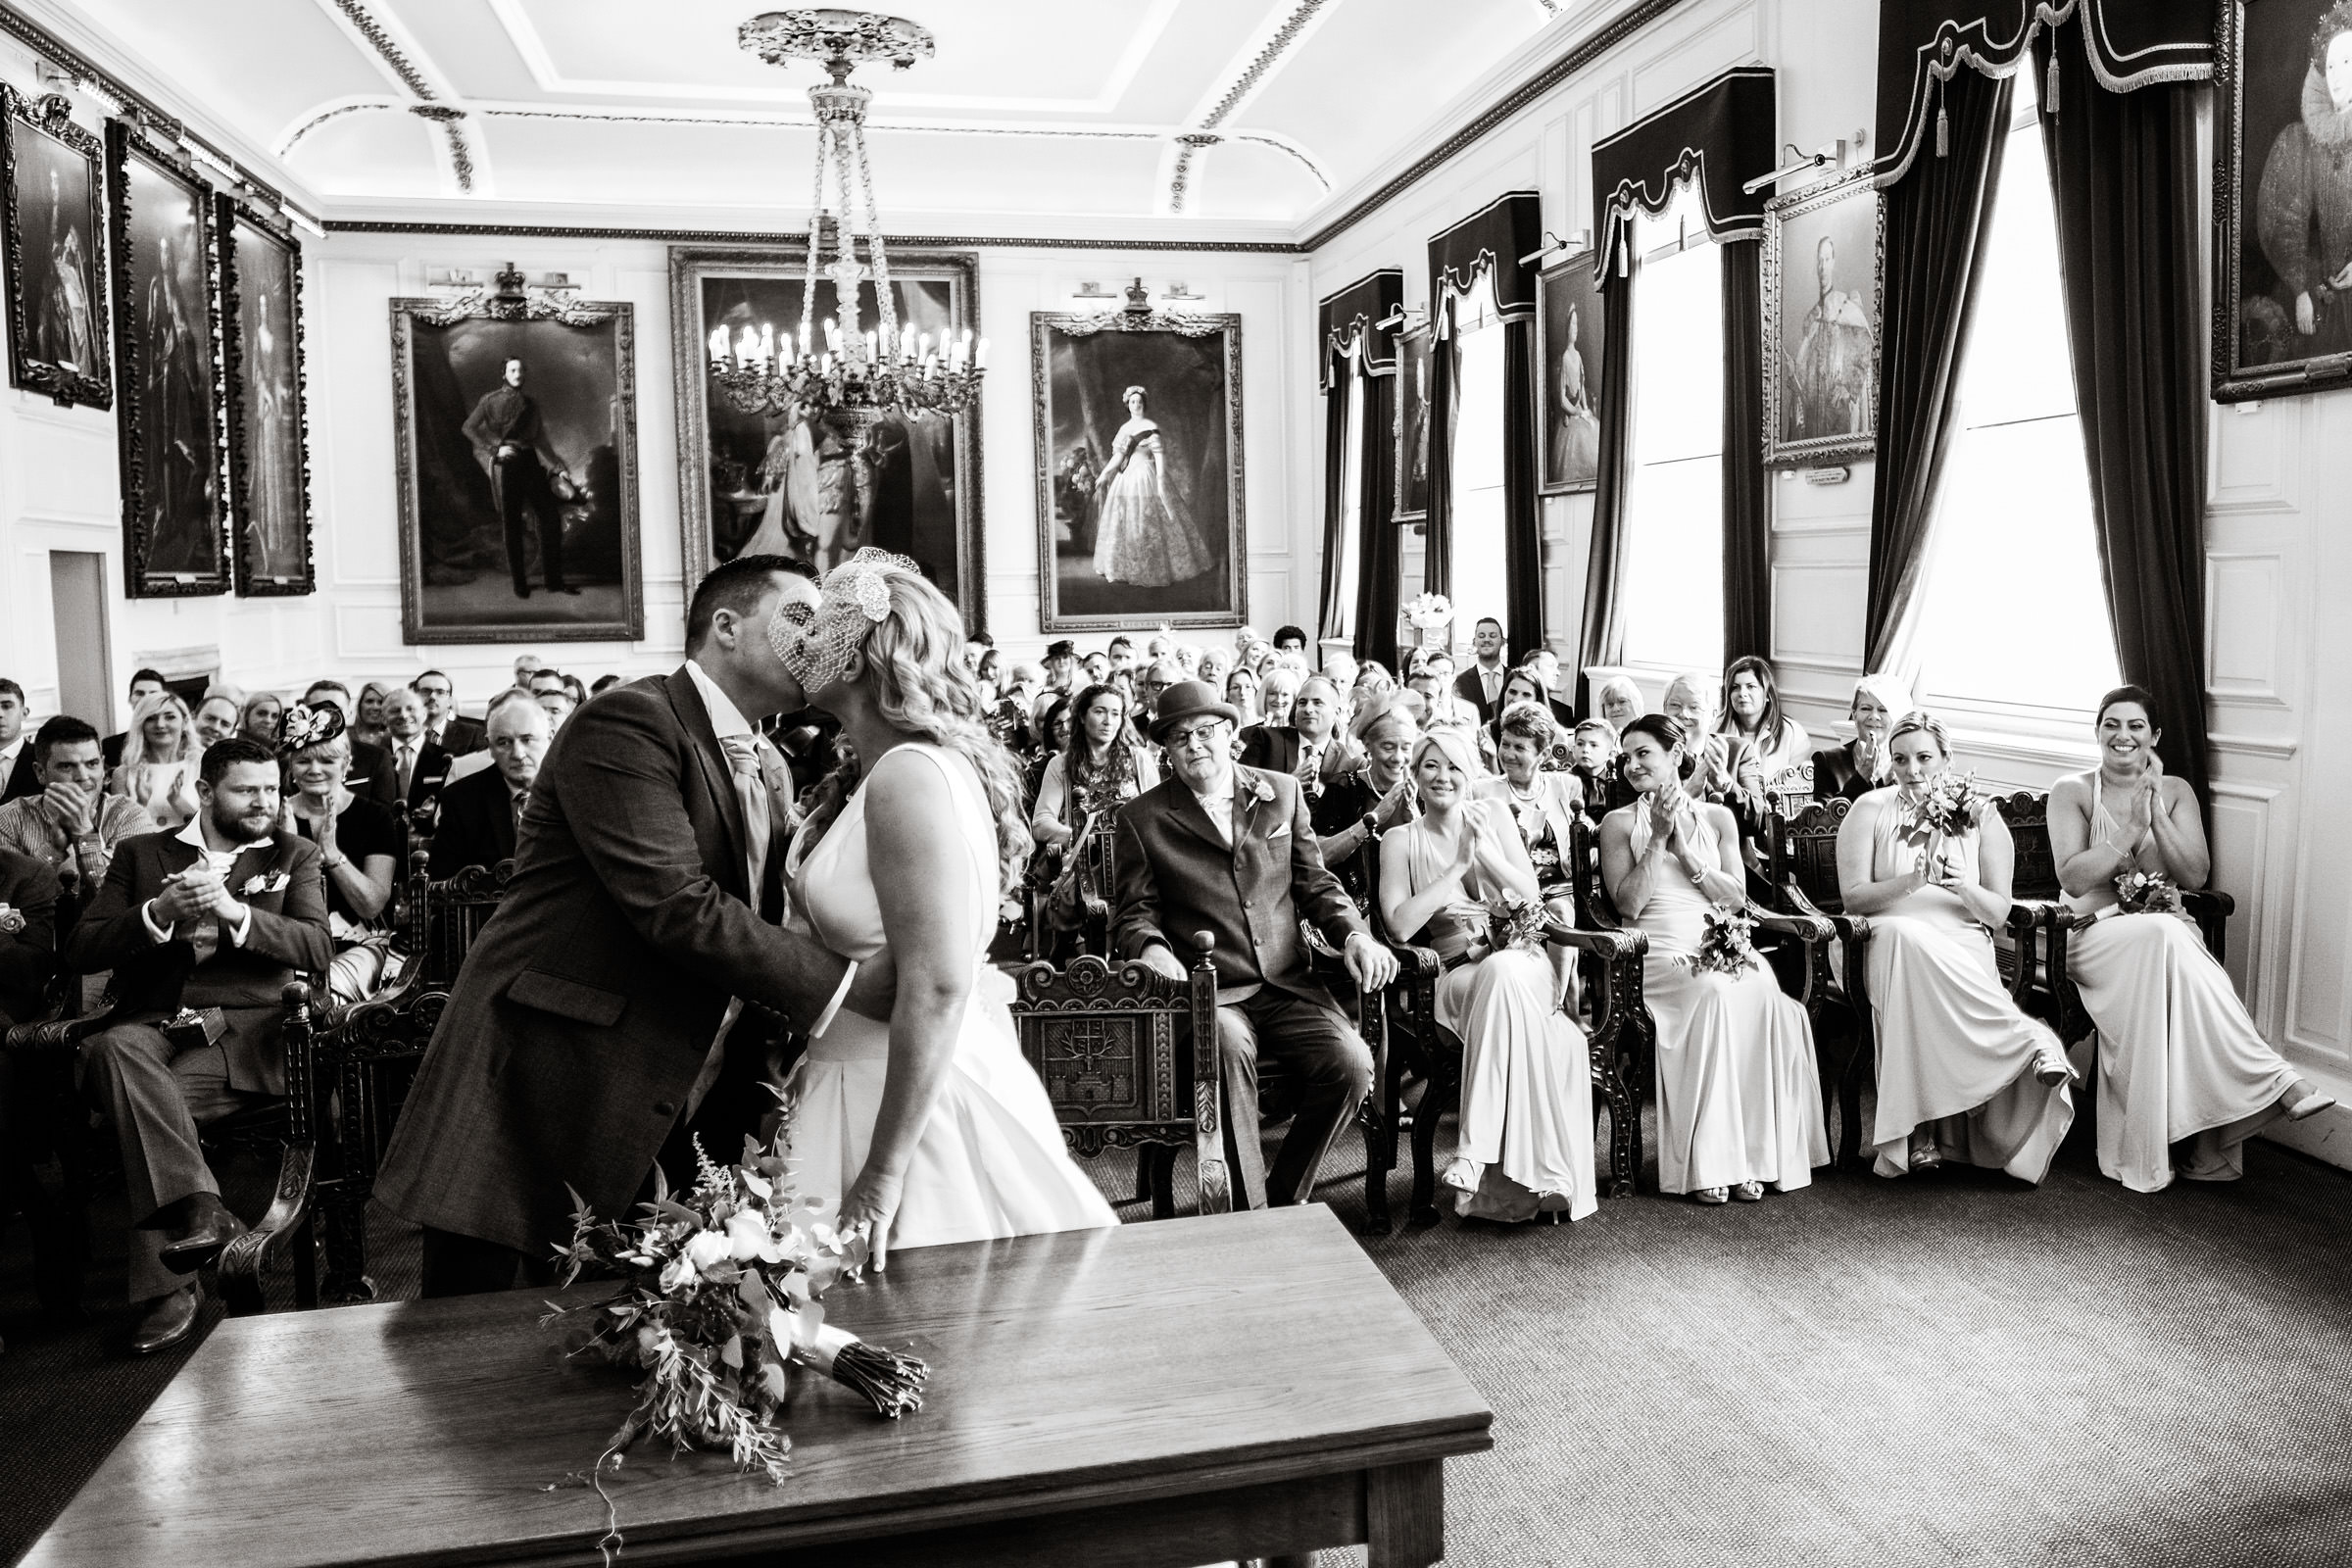 Wedding+Photography+at+Windsor+Guildhall+007.jpg